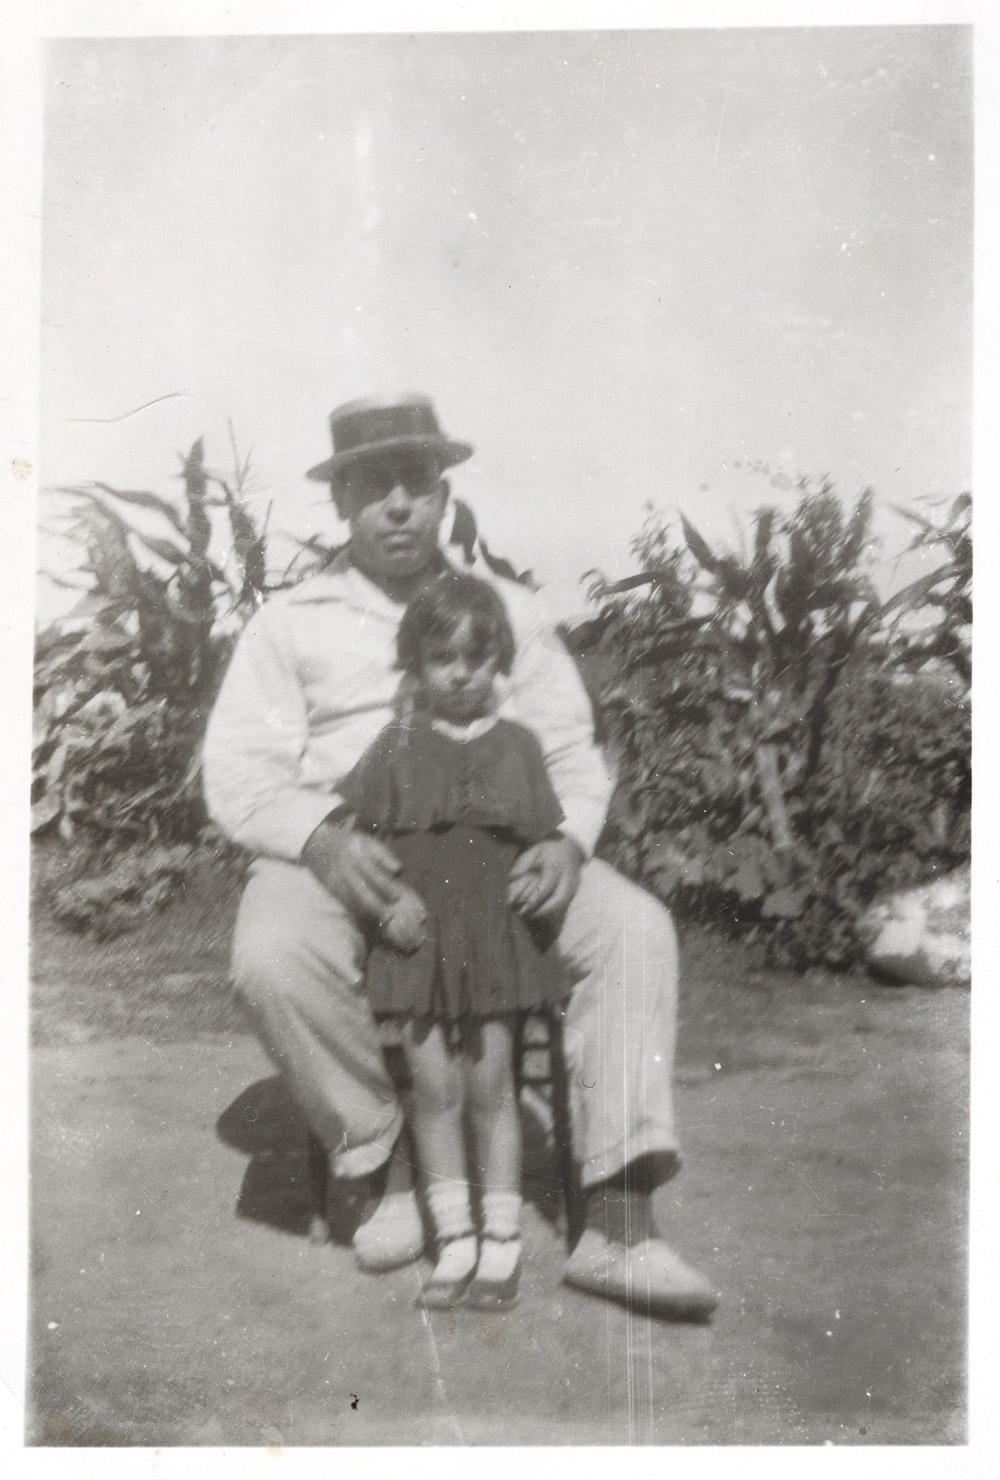 My great grandfather and grandmother (1931)